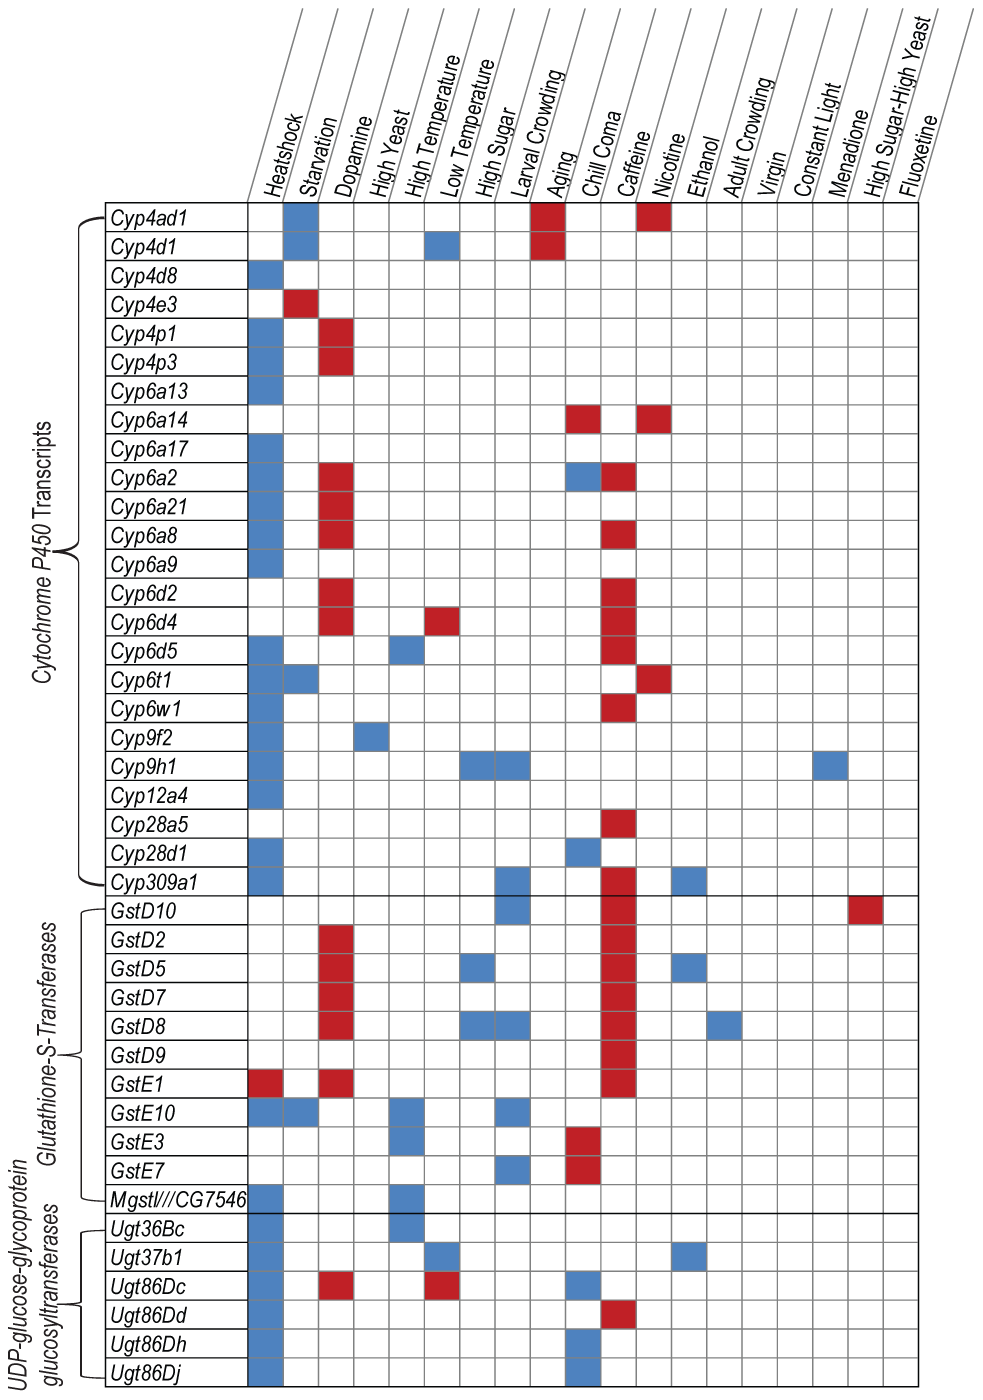 Class I phenotypically plastic transcripts associated with xenobiotic metabolism.